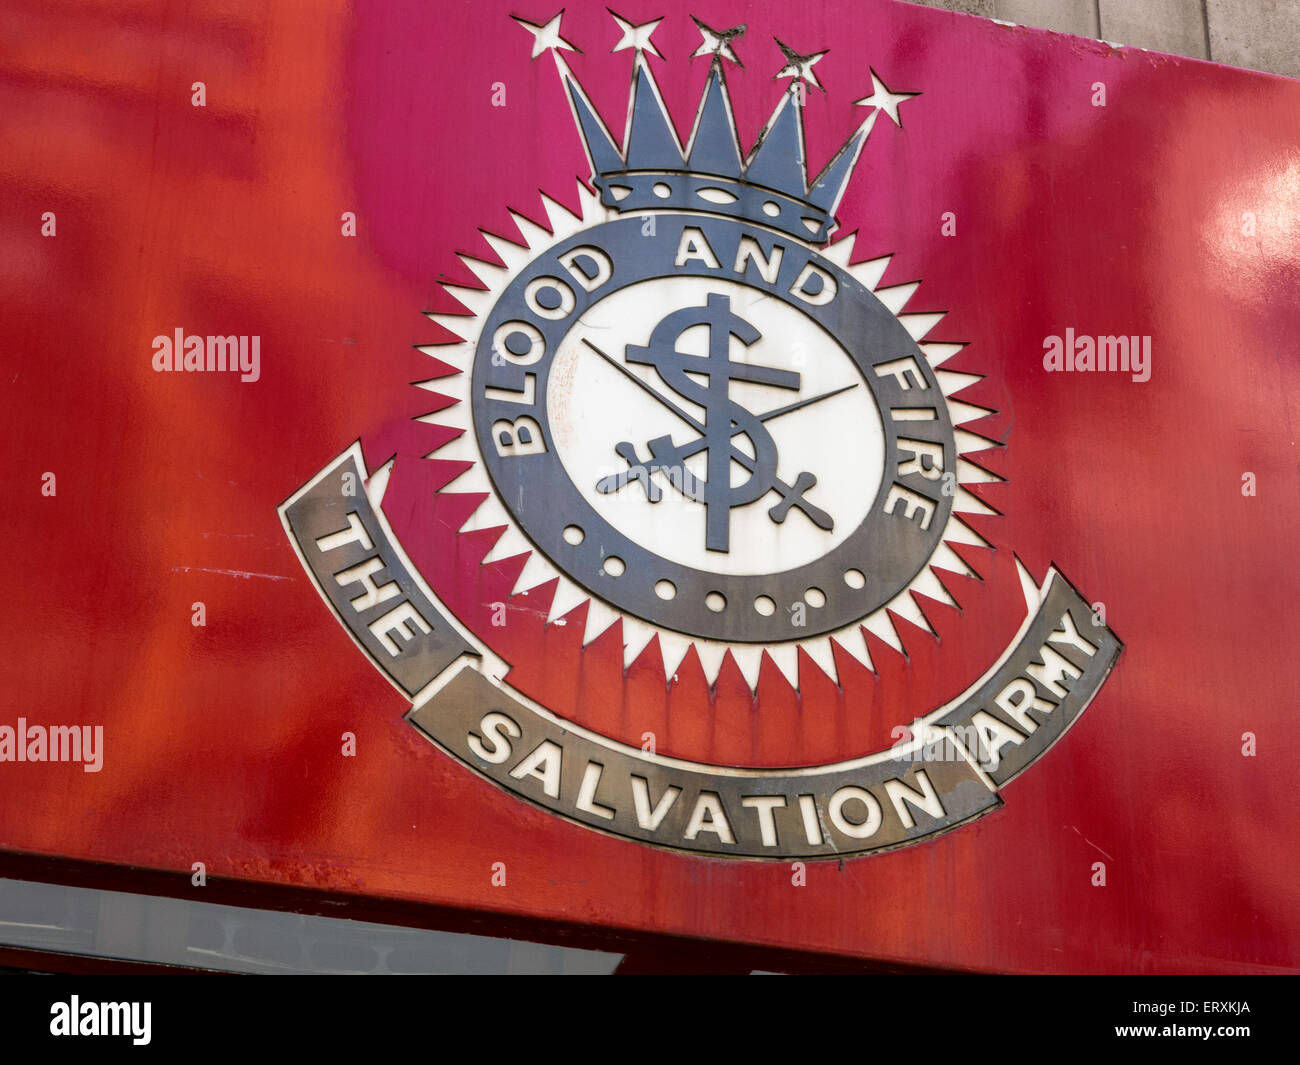 the salvation army organizations core values Core values passionate the salvation army's mission is to preach the gospel of jesus christ and to meet human needs in his name without discrimination we believe christ changes lives this faith gives us a motivation that goes beyond simply doing good we have a passion for doing the most good for body, soul and spirit.